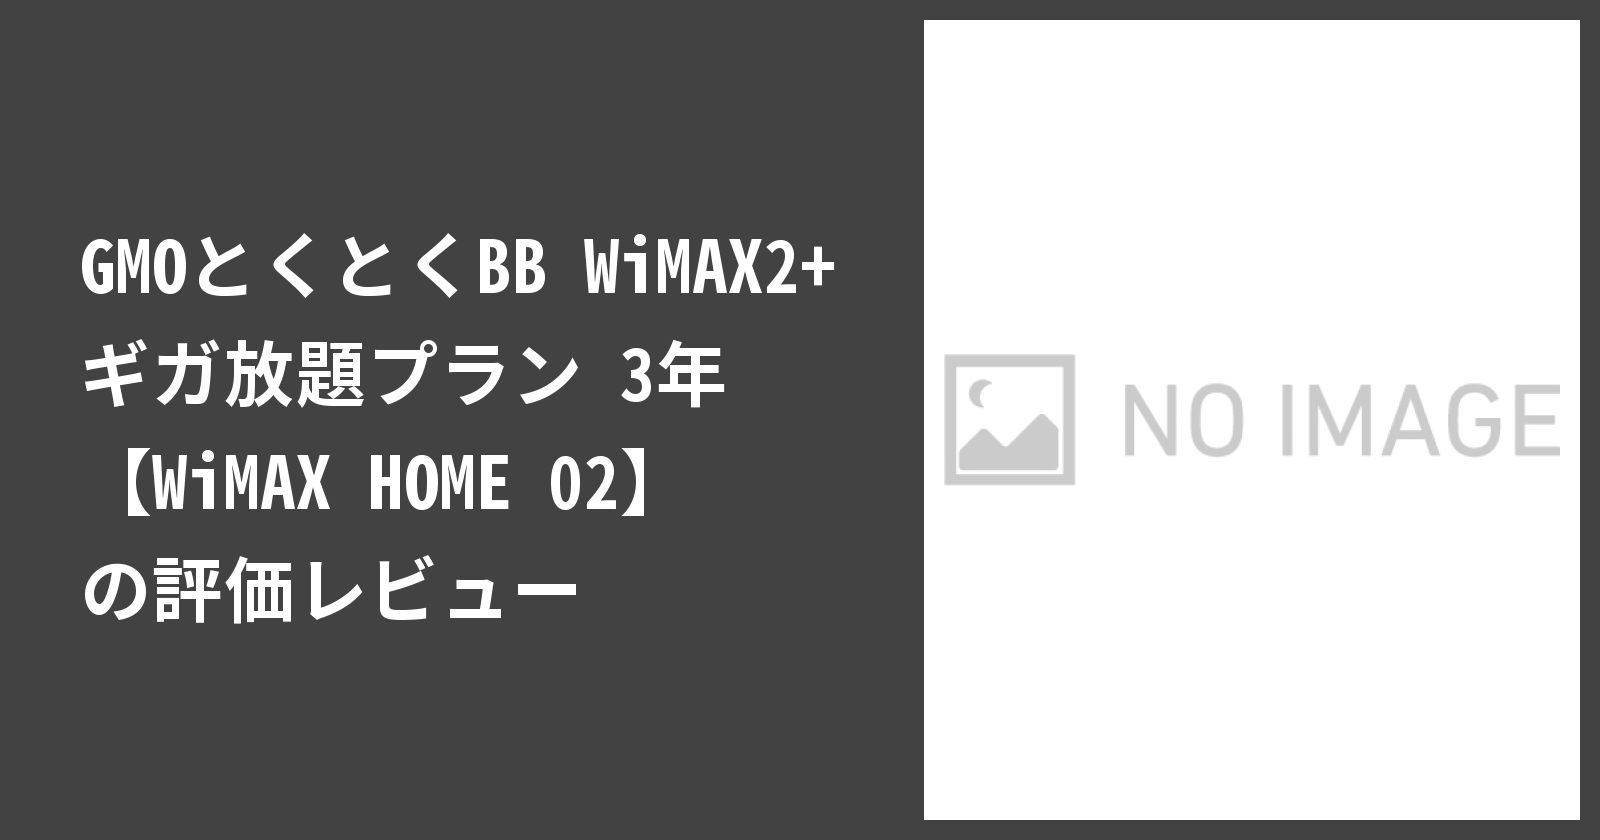 GMOとくとくBB WiMAX2+ ギガ放題プラン 3年 【WiMAX HOME 02】を徹底評価